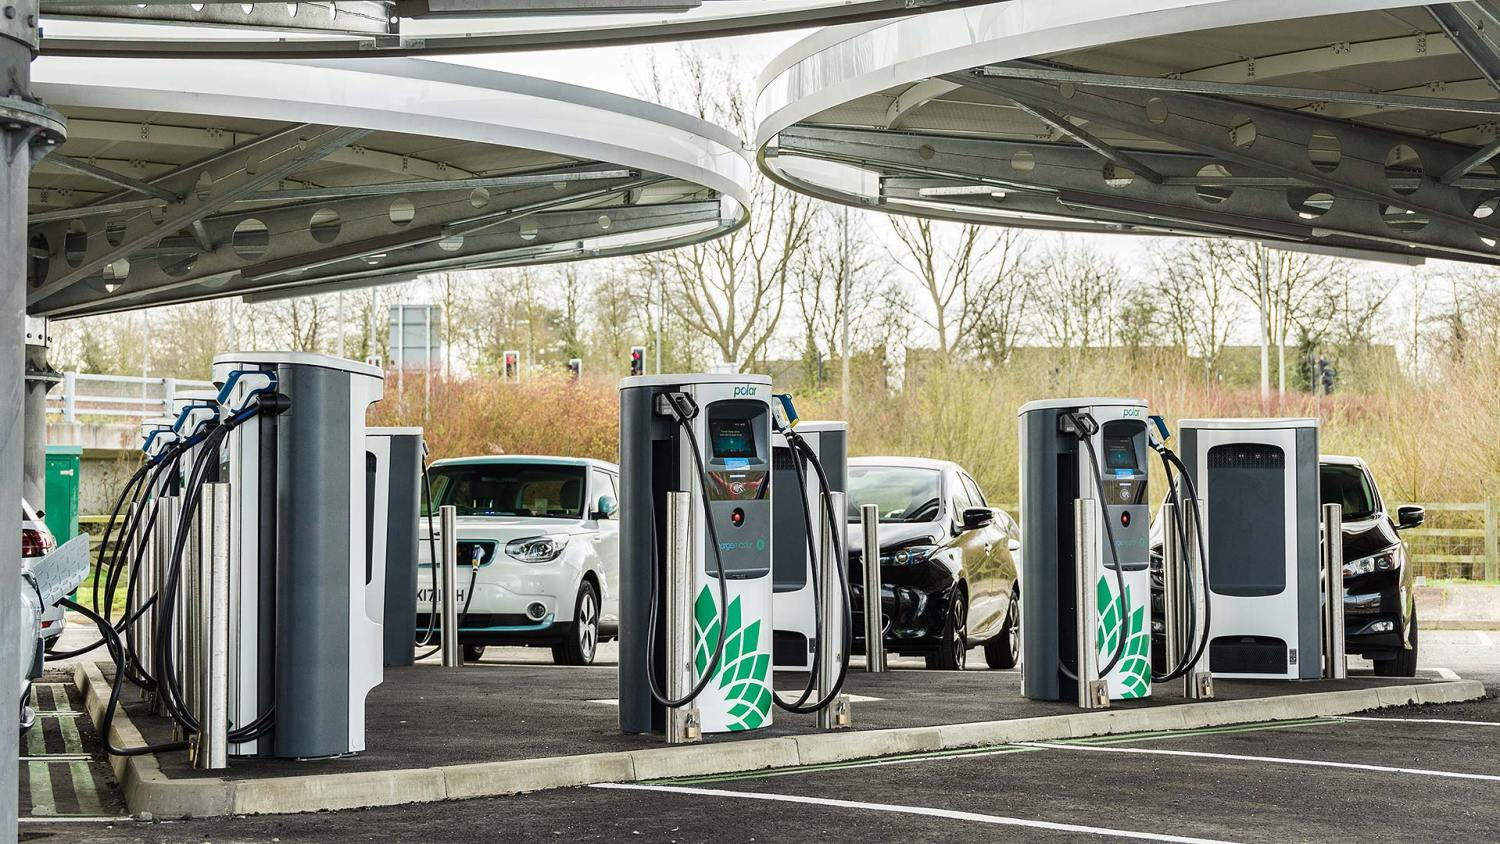 BP Chargemaster rapid charging hub at Milton Keynes Coachway